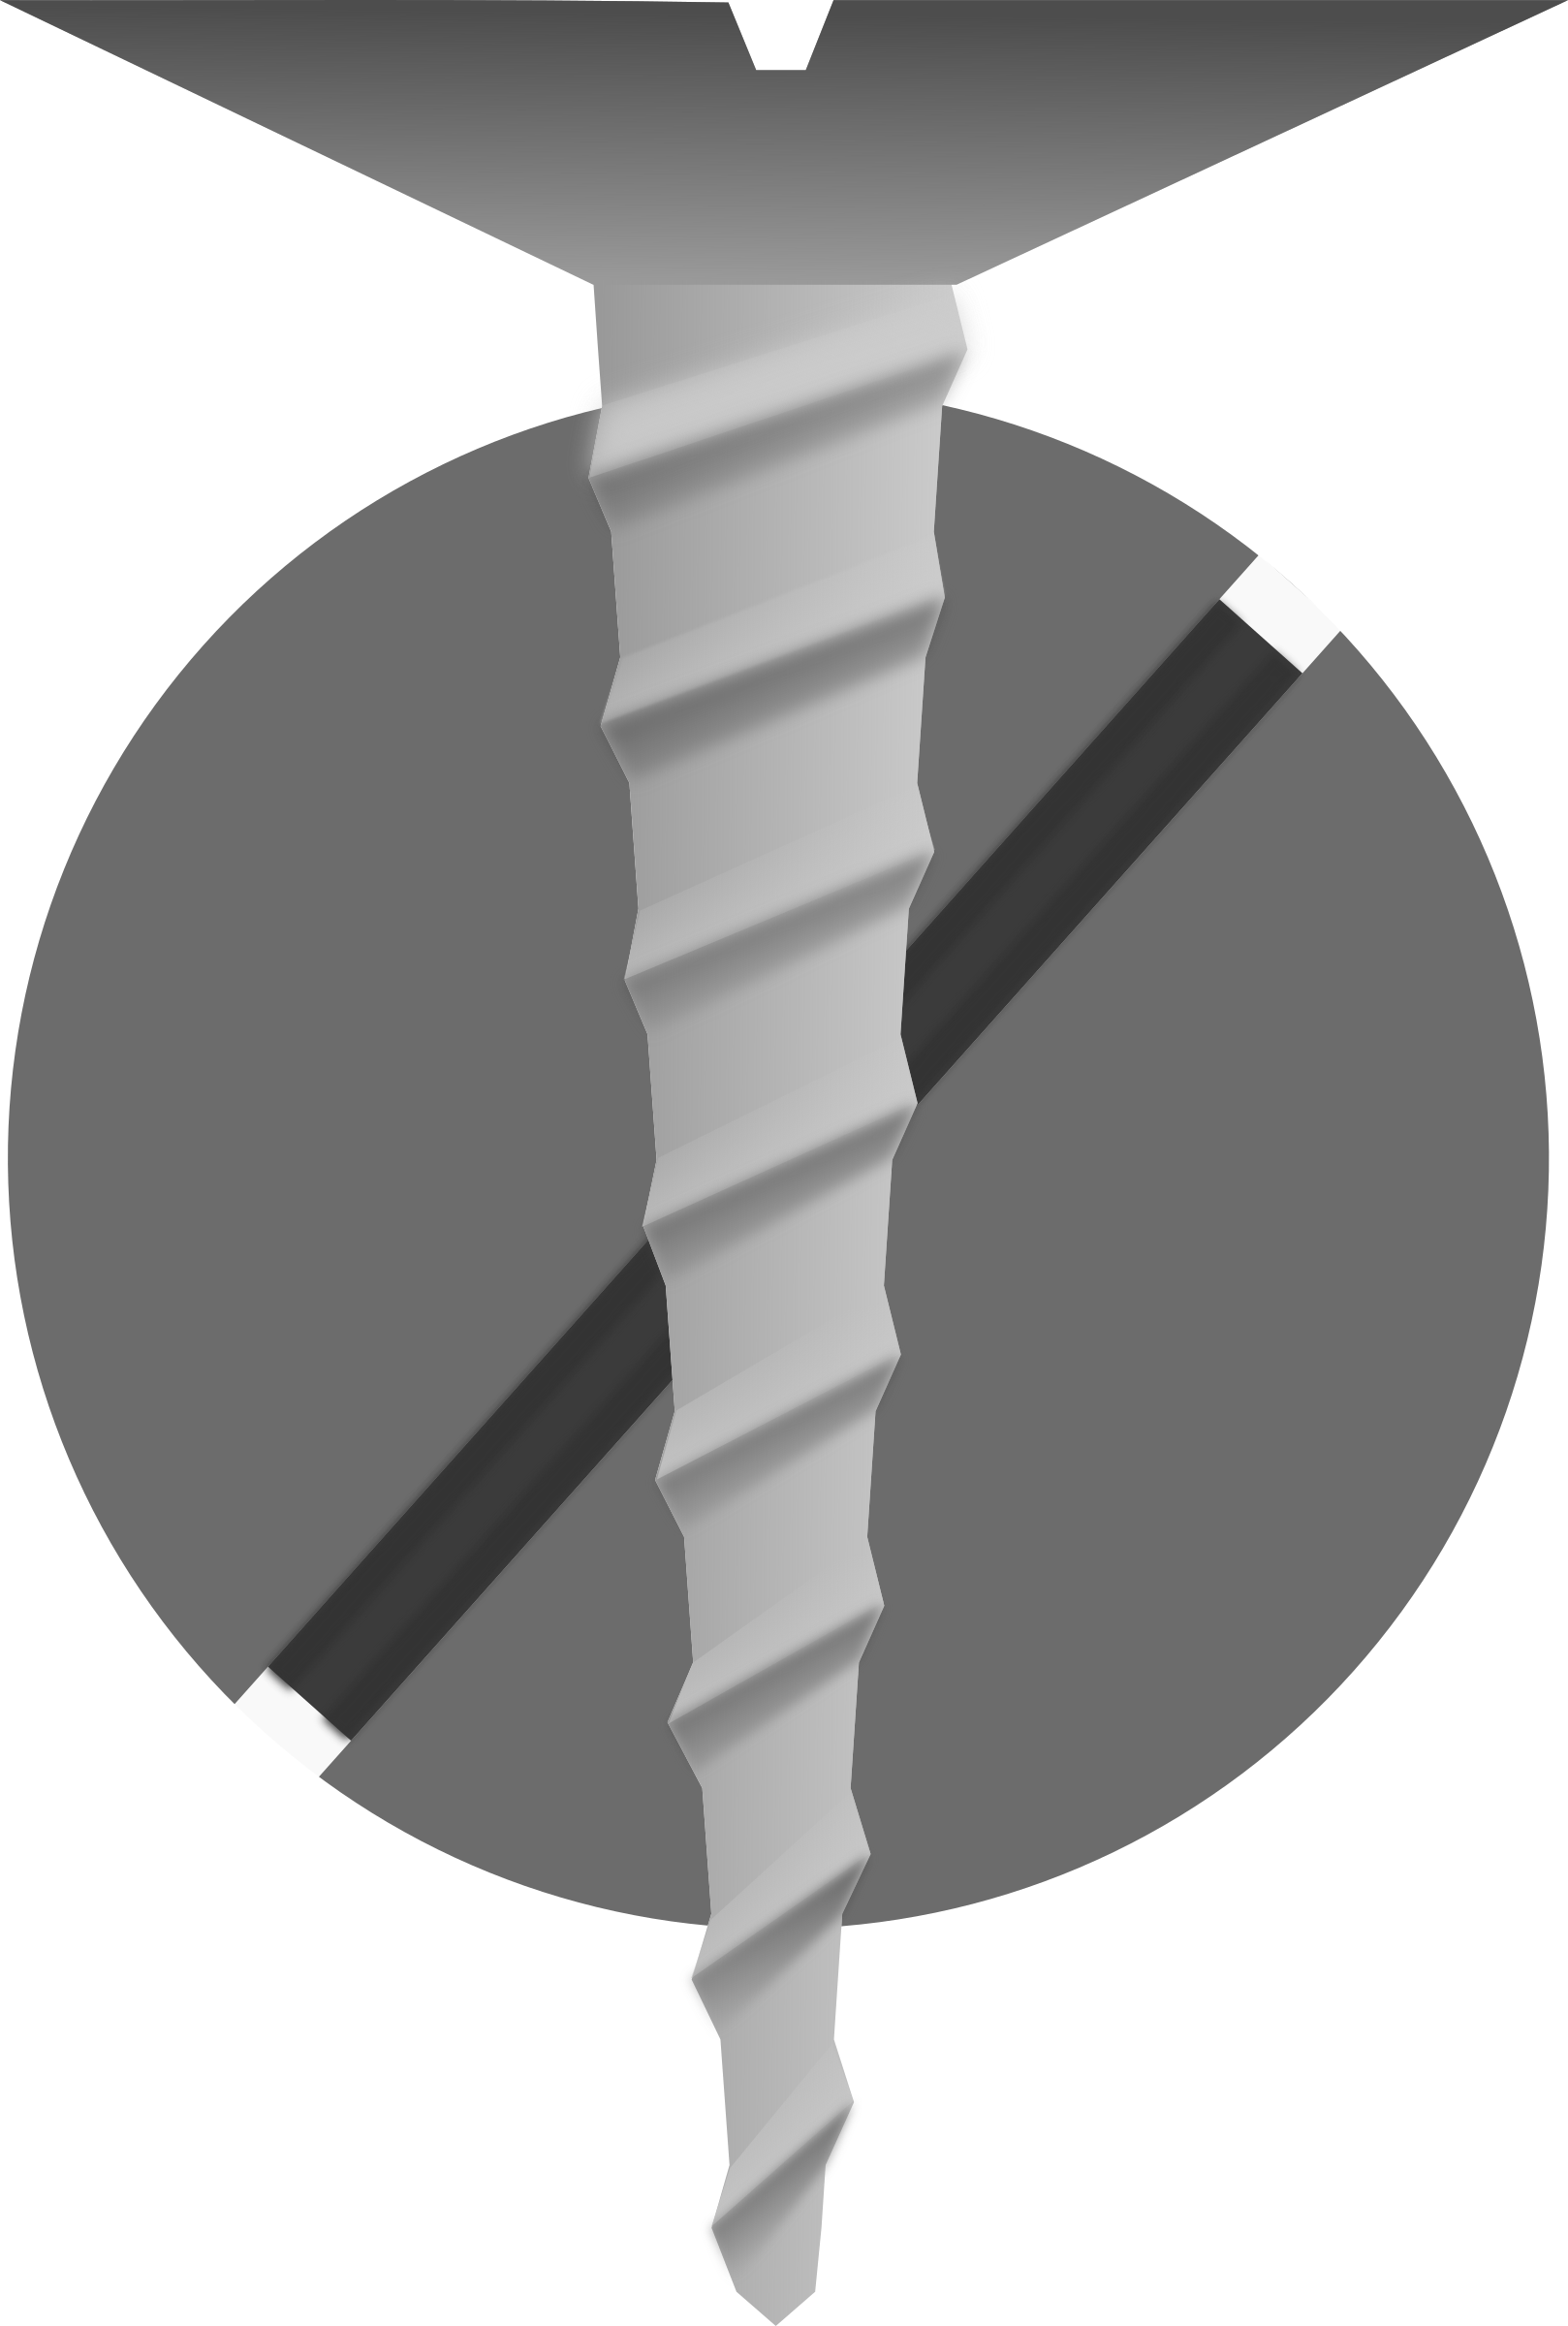 screw by pauthonic